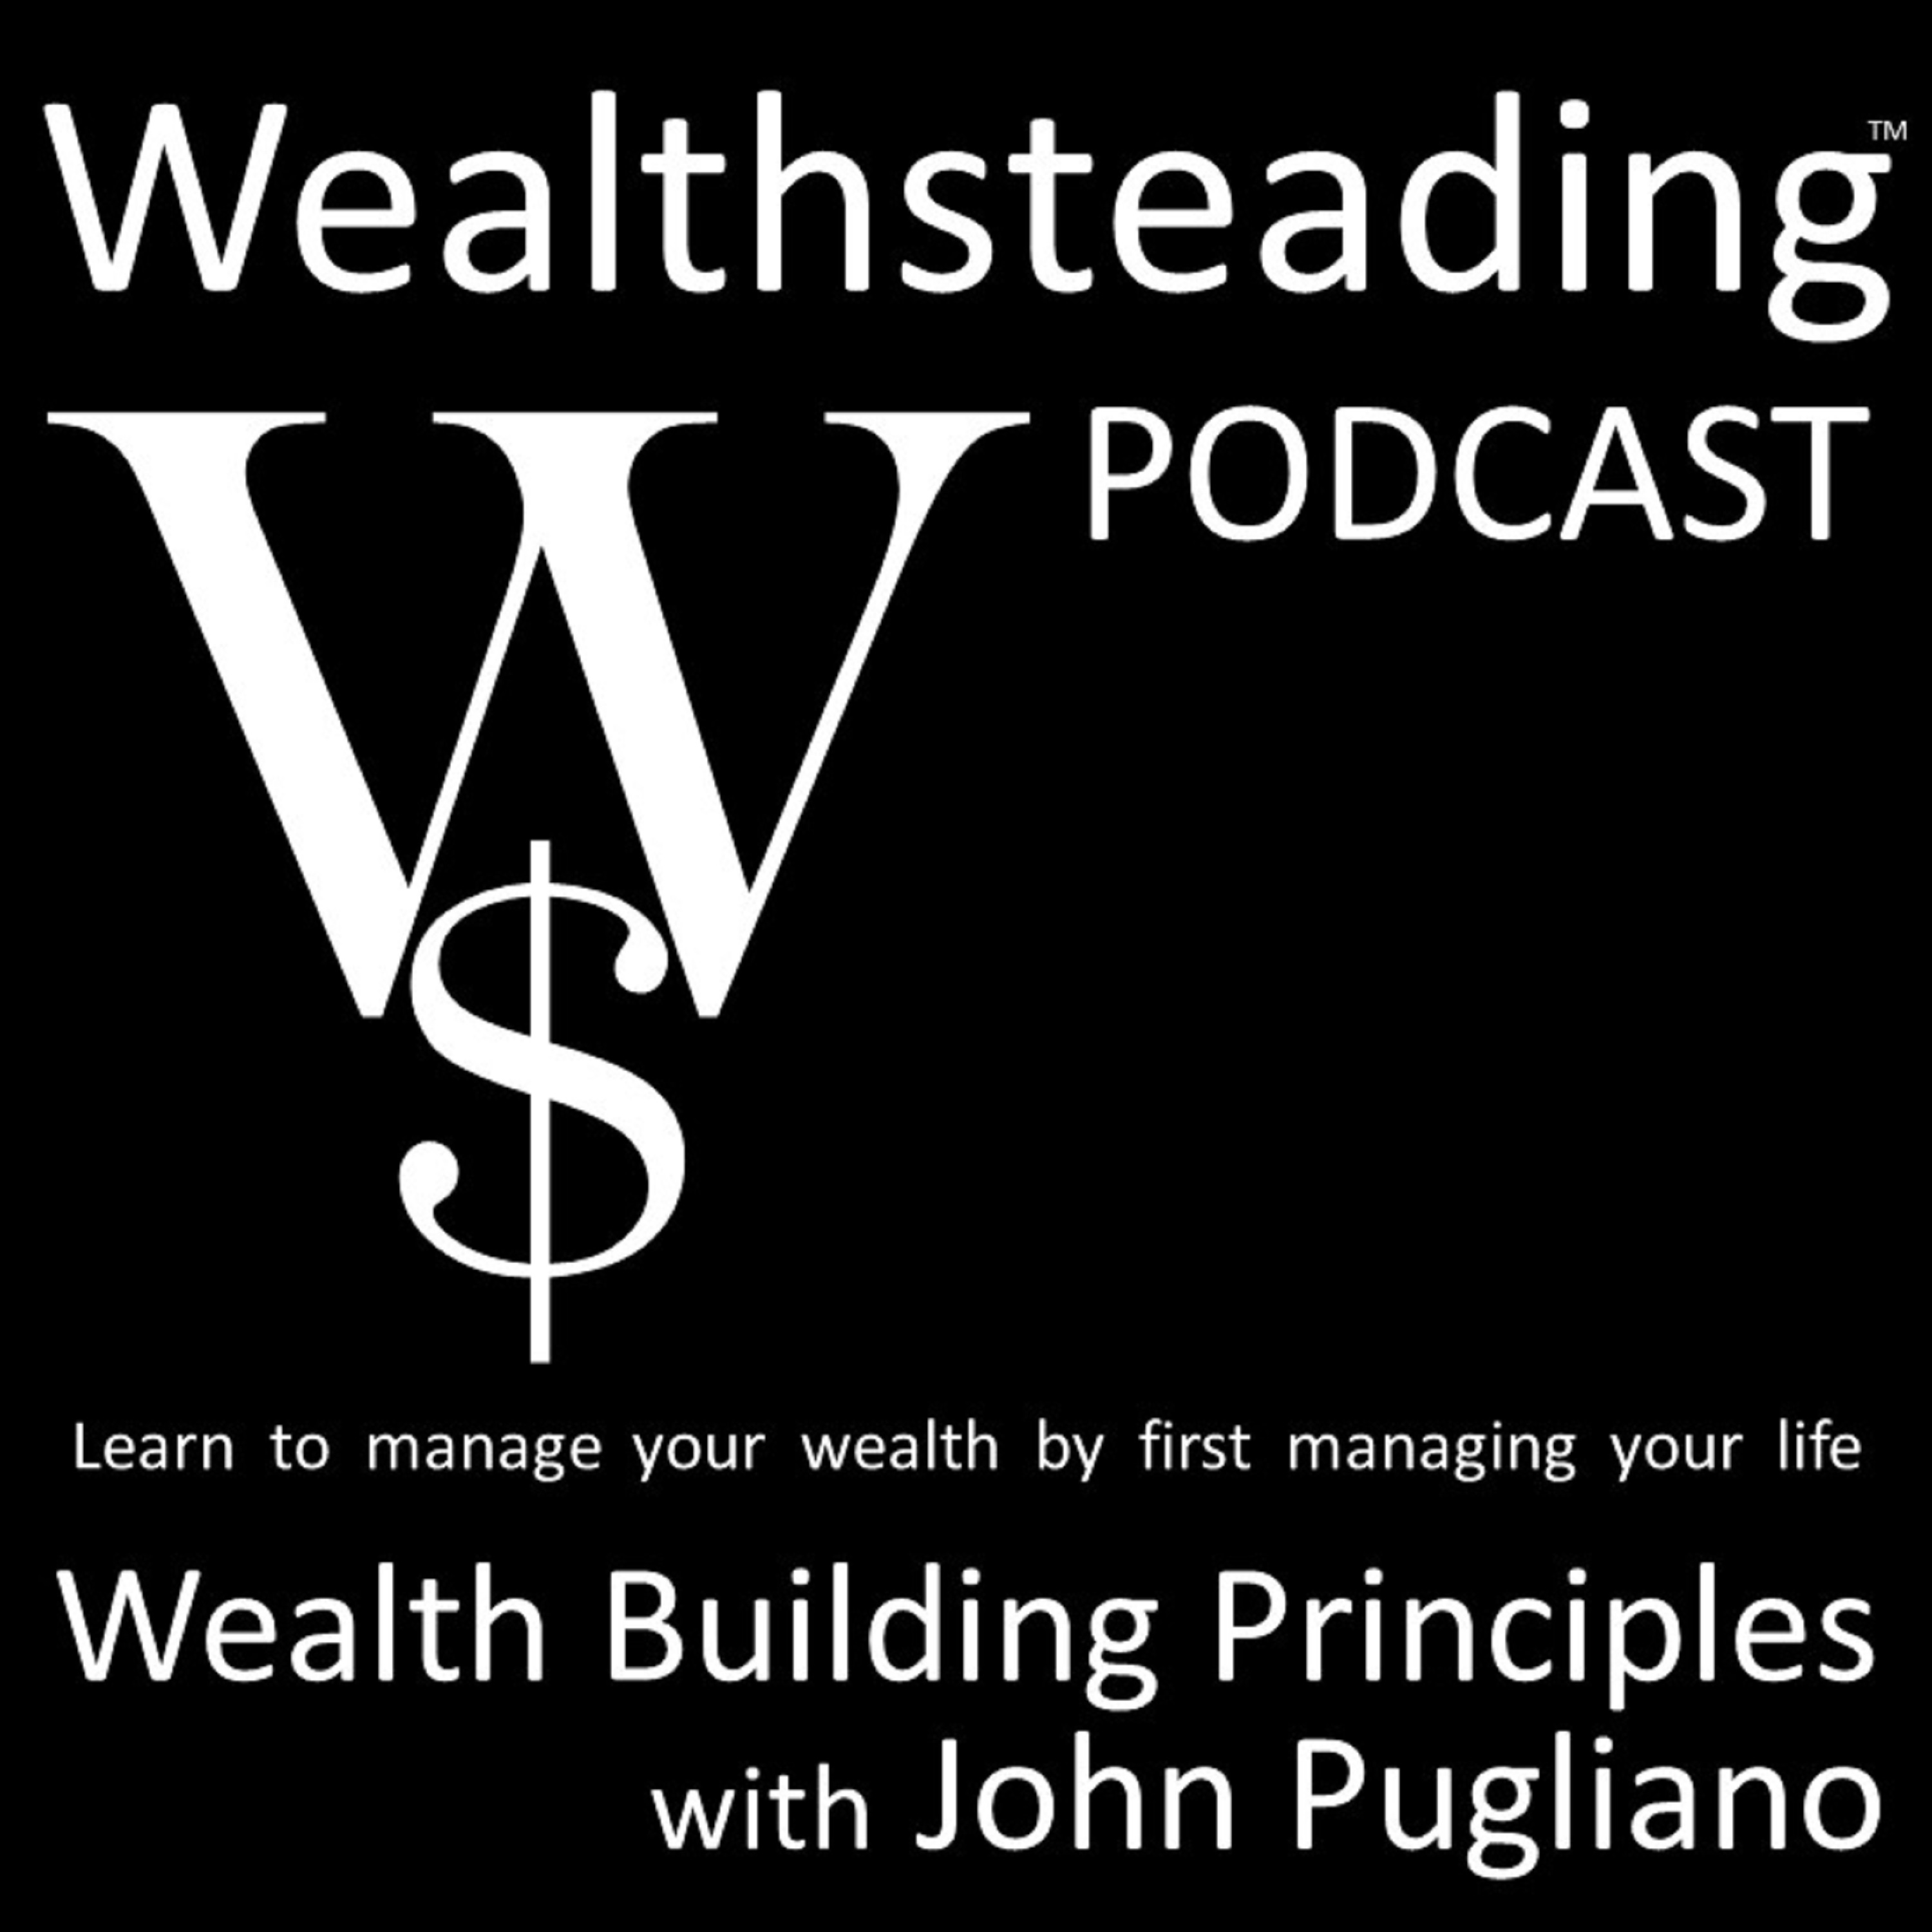 WEALTHSTEADING Wealth Building Principles with John Pugliano